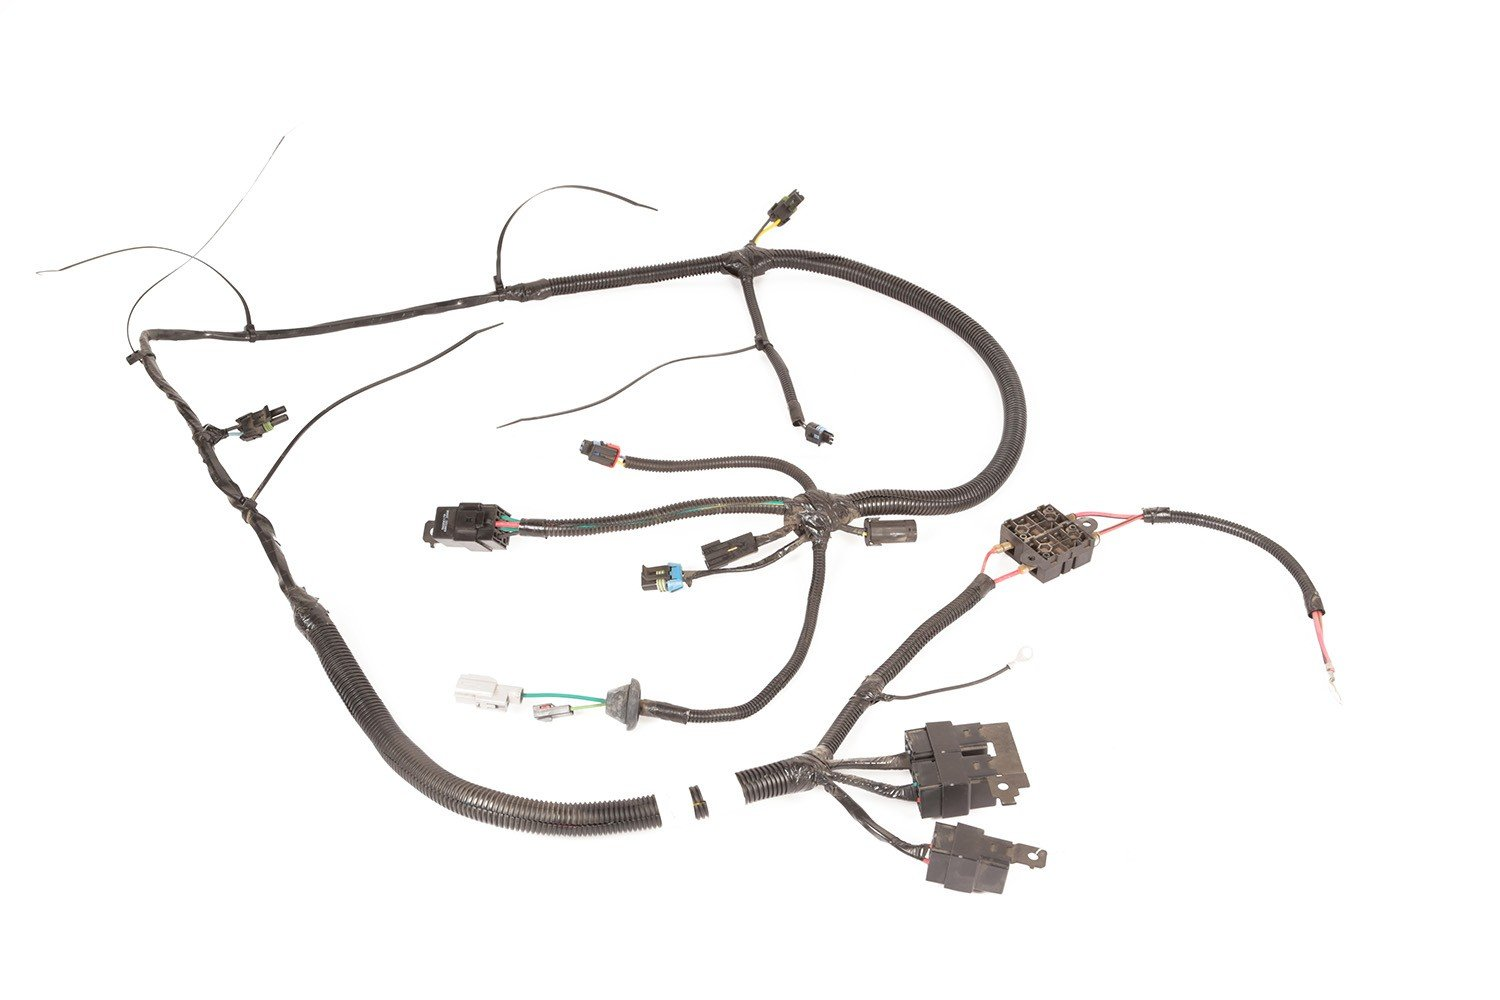 OMIX-ADA 56022080AB HVAC Wiring Harness for 1996 Jeep